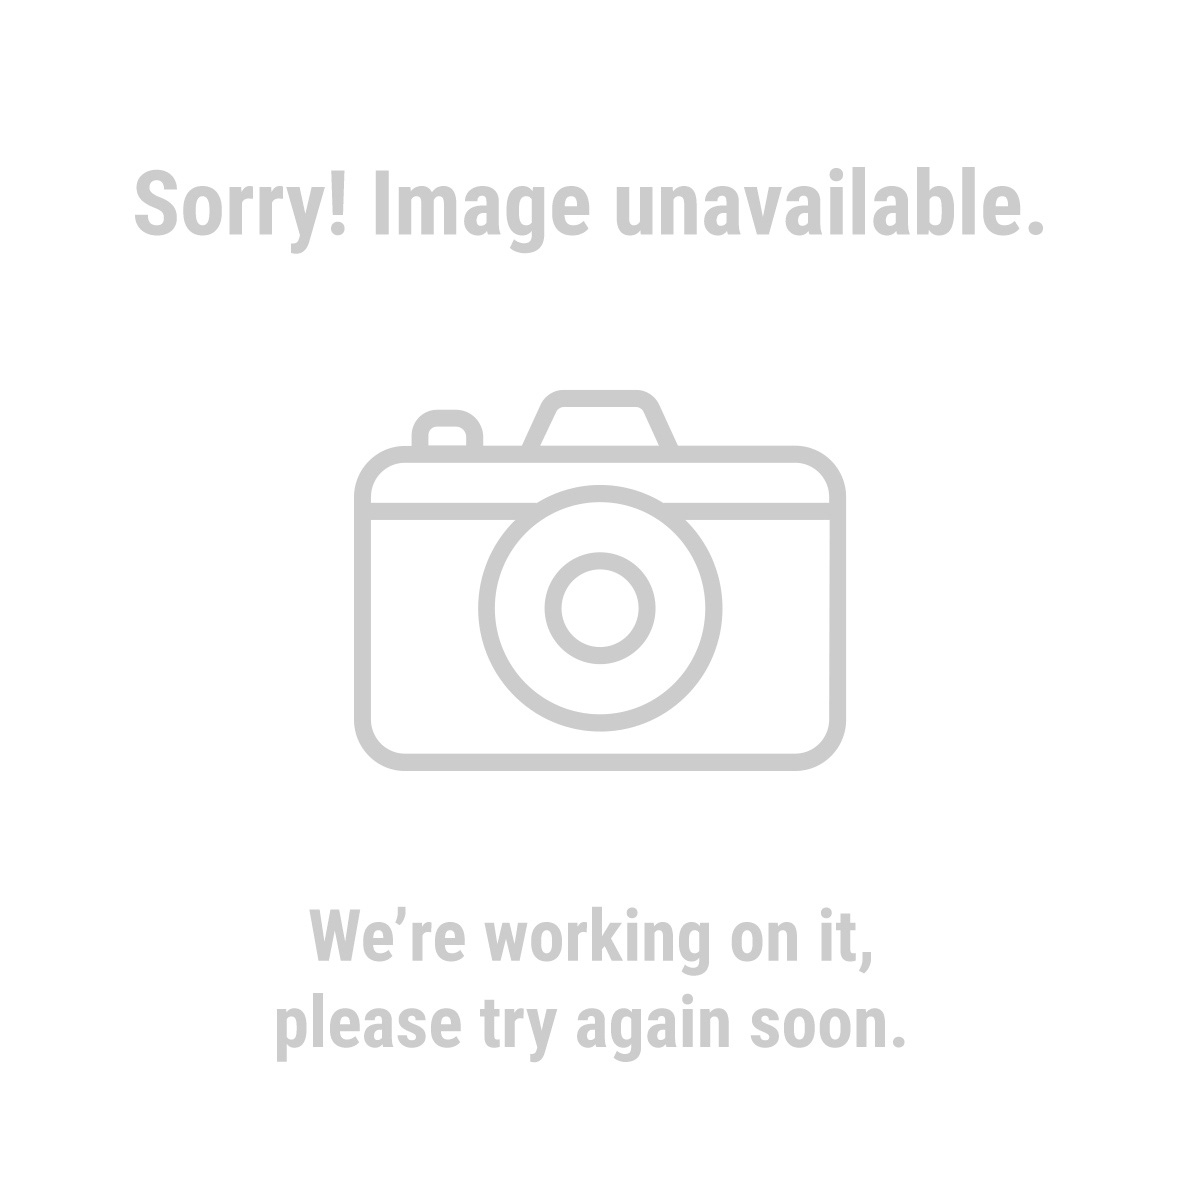 Meguiar's 62223 32 Oz. Meguiar's Ultra Cut Compound